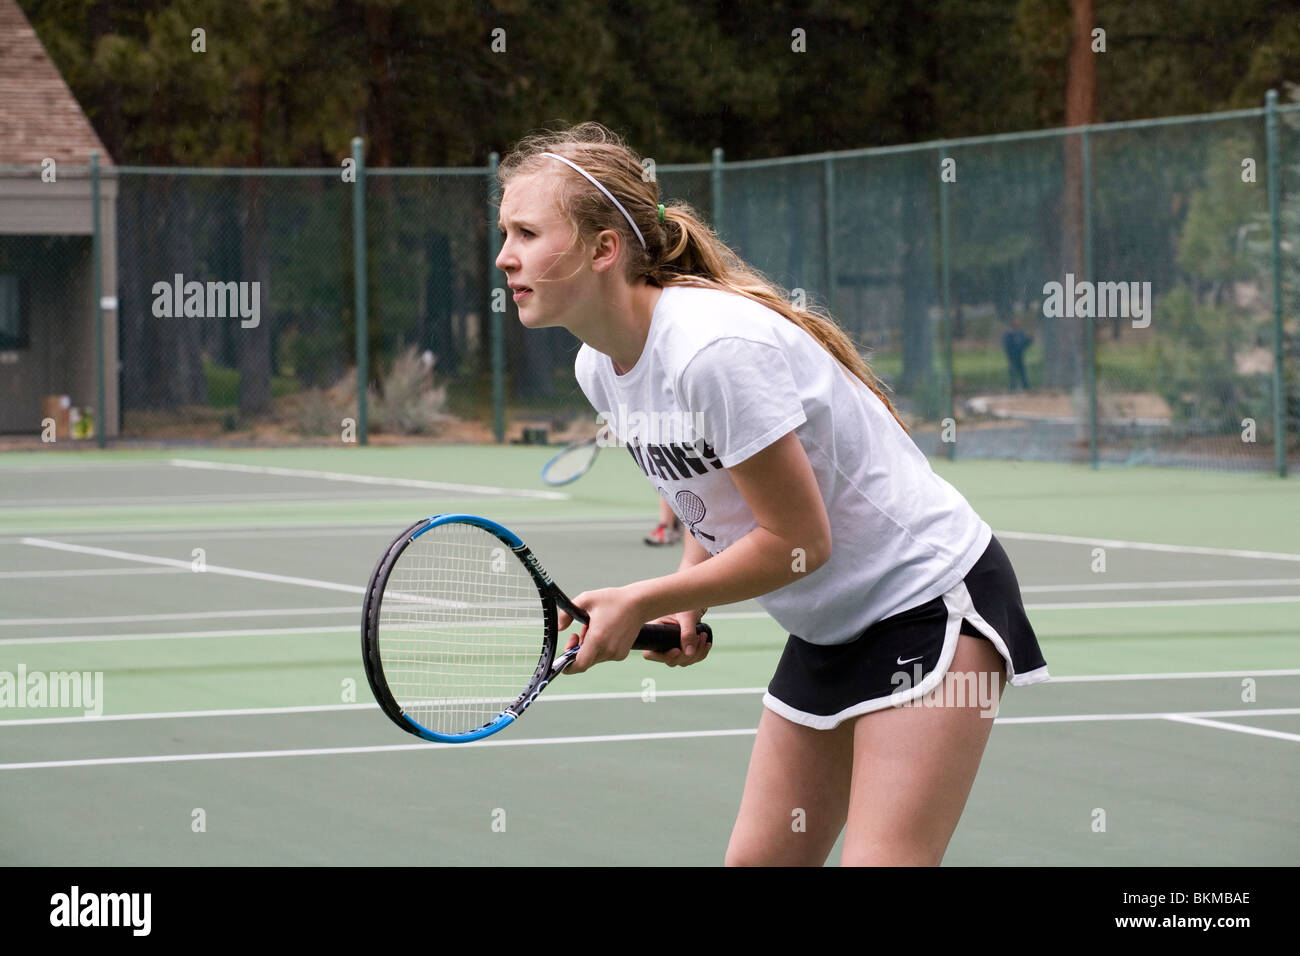 A high school tennis player on the varsity team at a ...